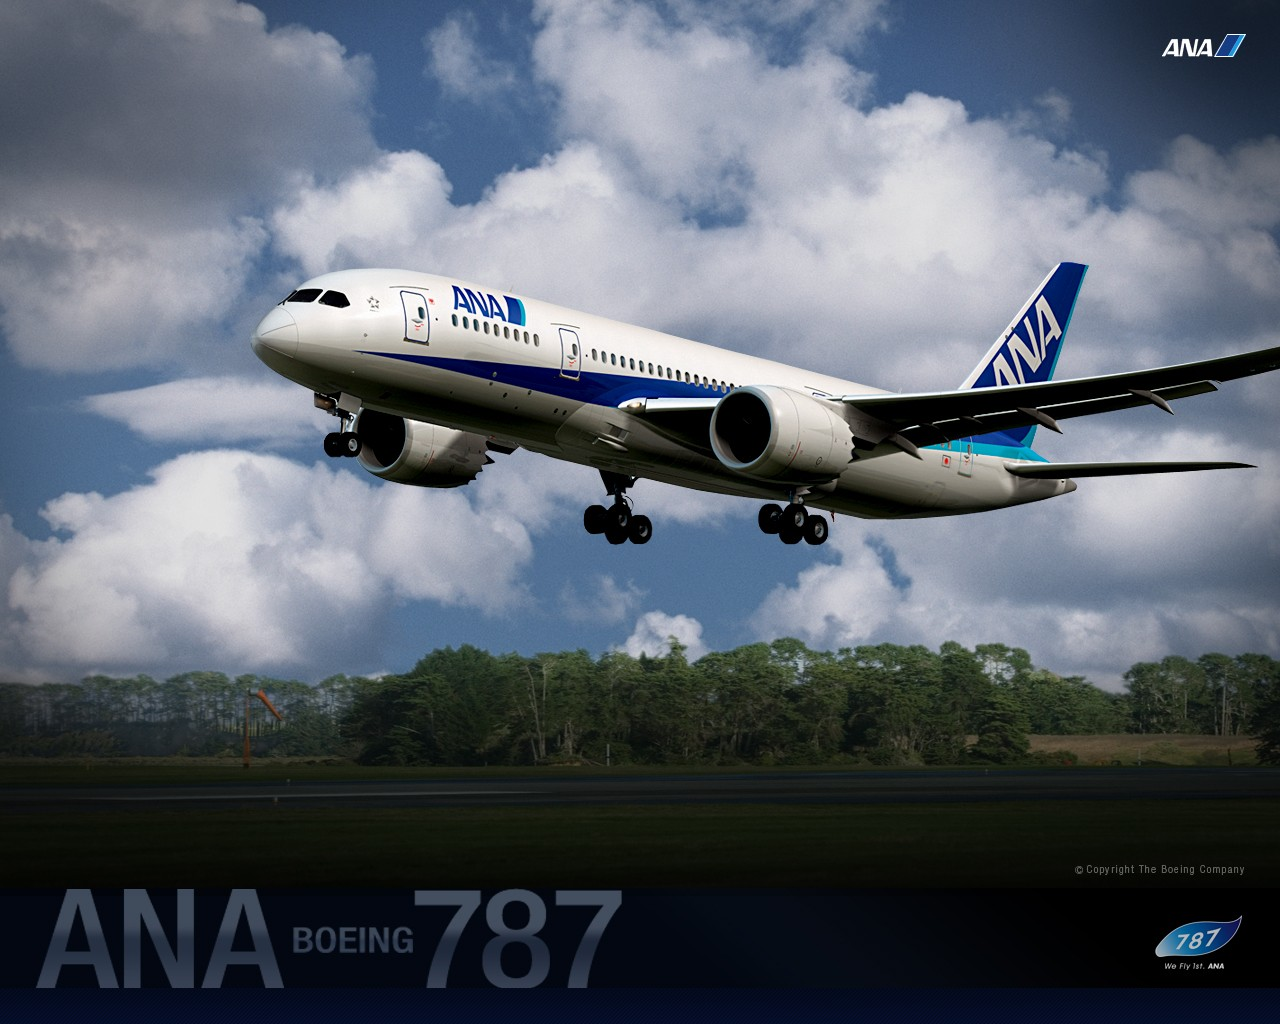 ANA All Nippon Airways Boeing Dreamliner wallpaper 30387